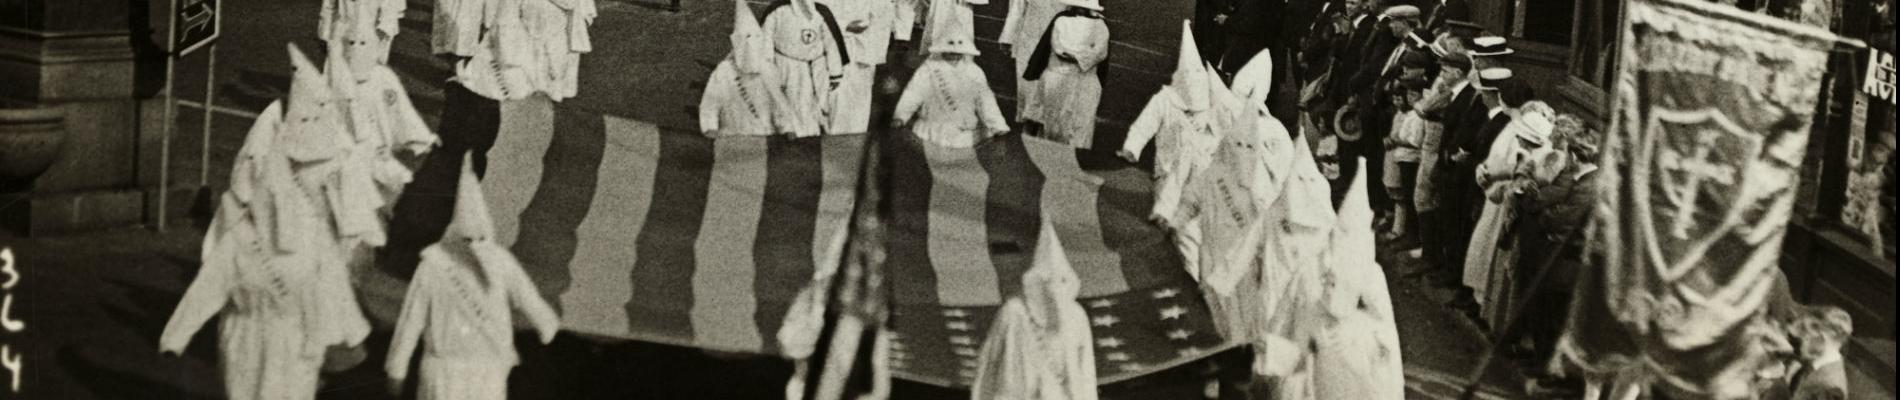 The History of the KKK in Howell, Michigan